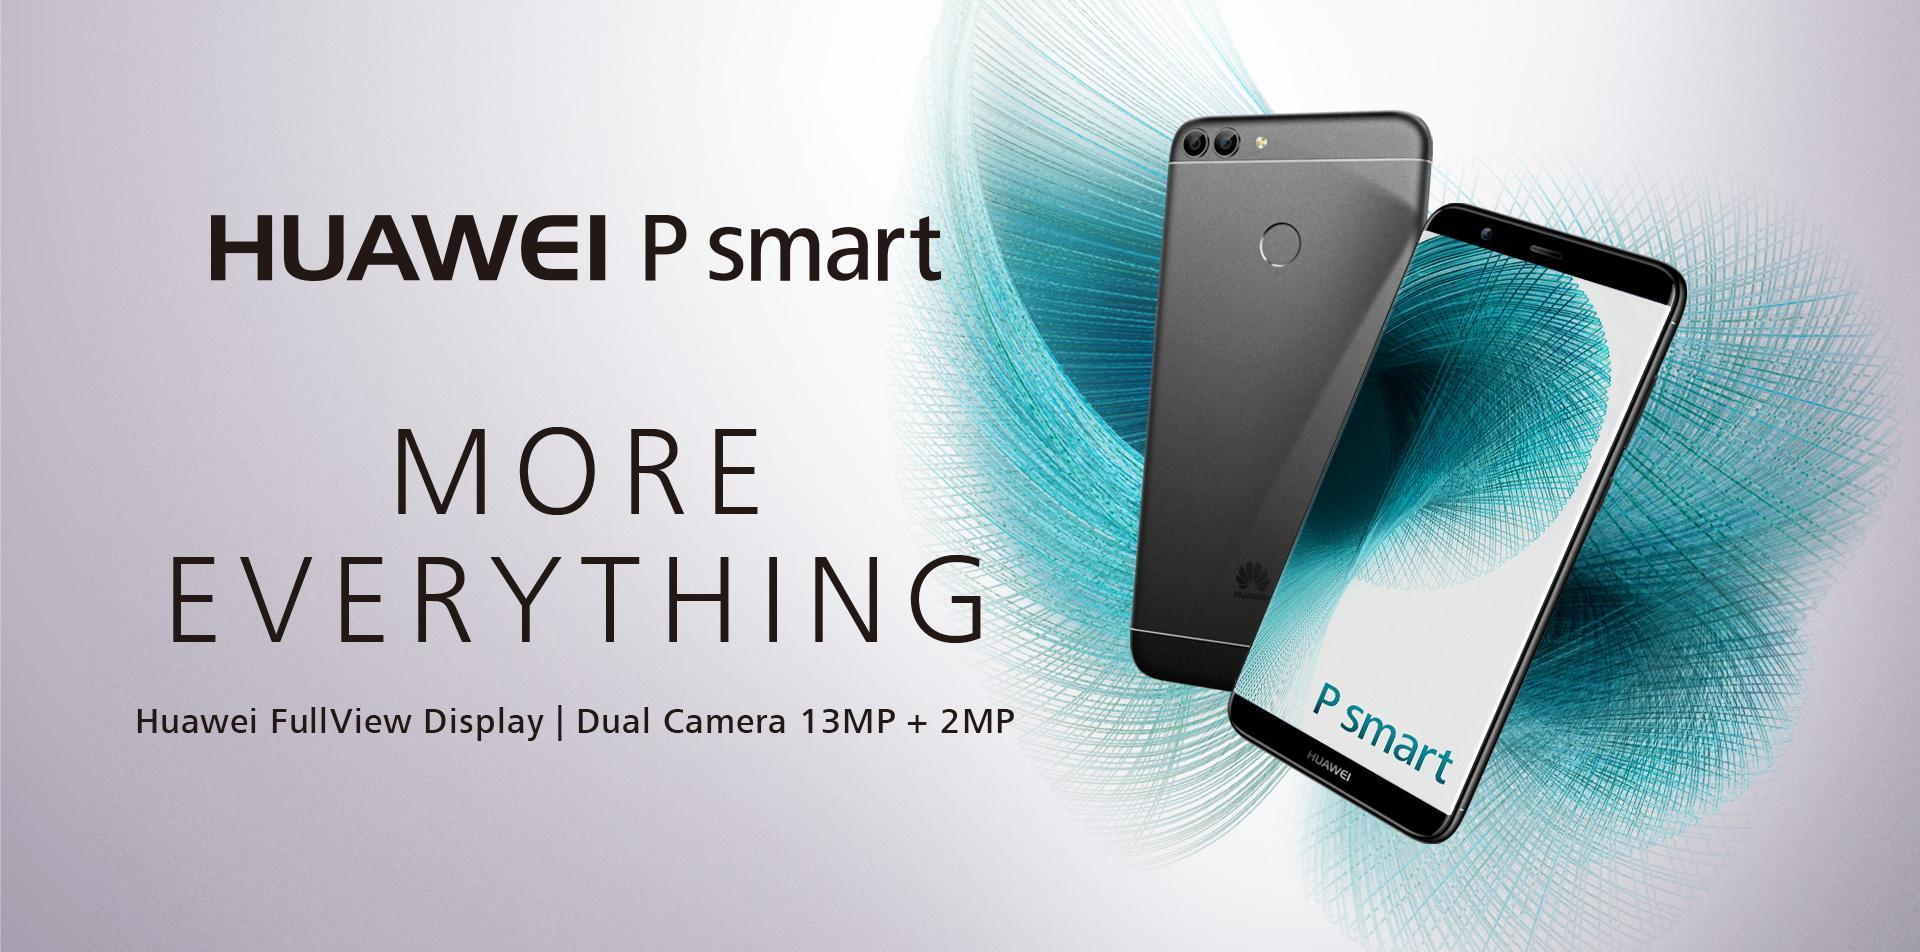 huawei-p-smart-fullview-display-dual-camera-bg